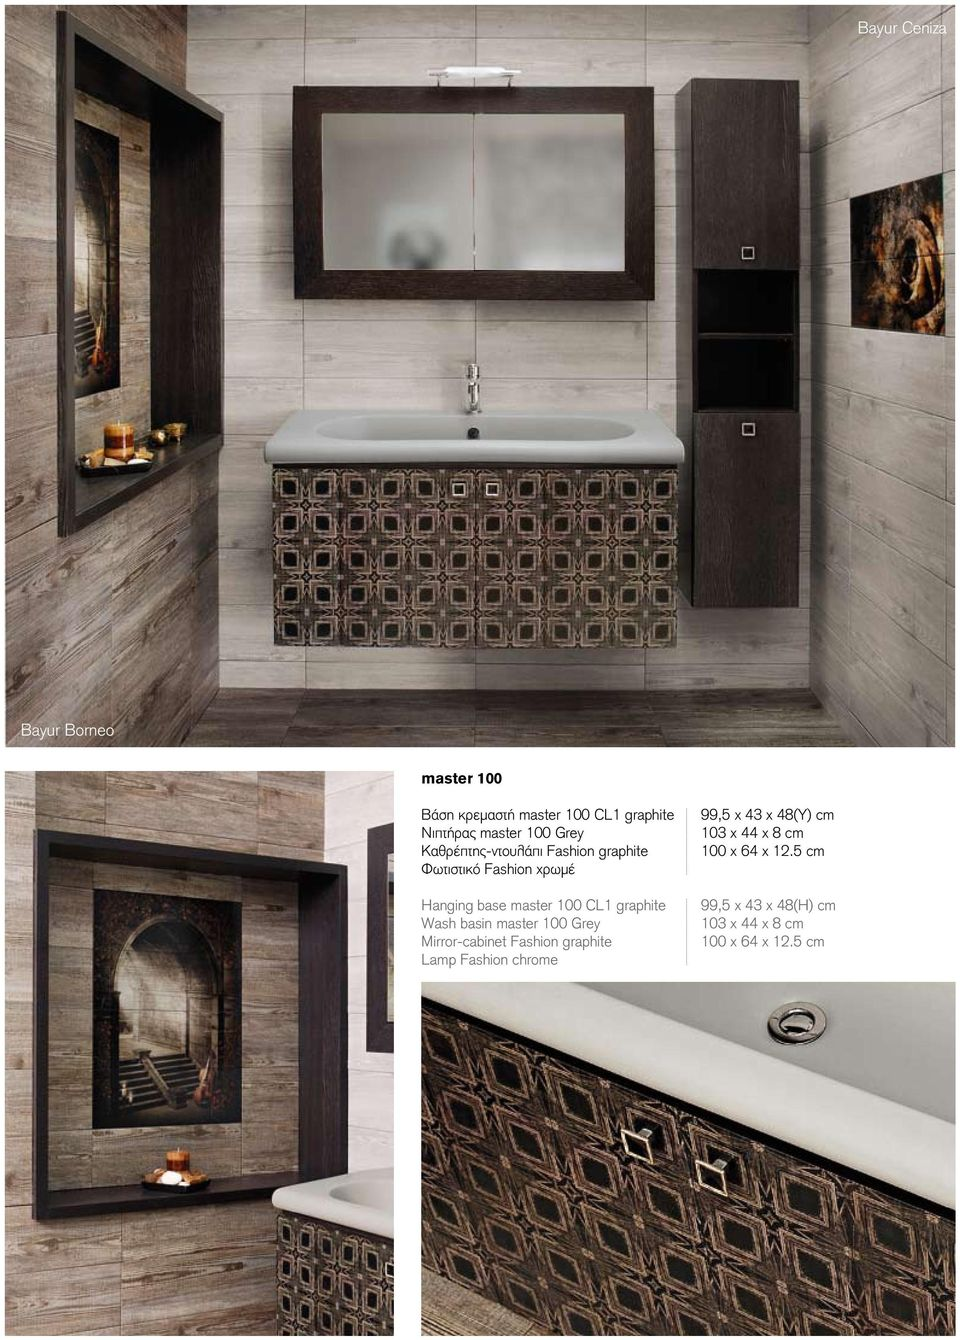 graphite Wash basin master 100 Grey Mirror-cabinet Fashion graphite Lamp Fashion chrome 99,5 χ